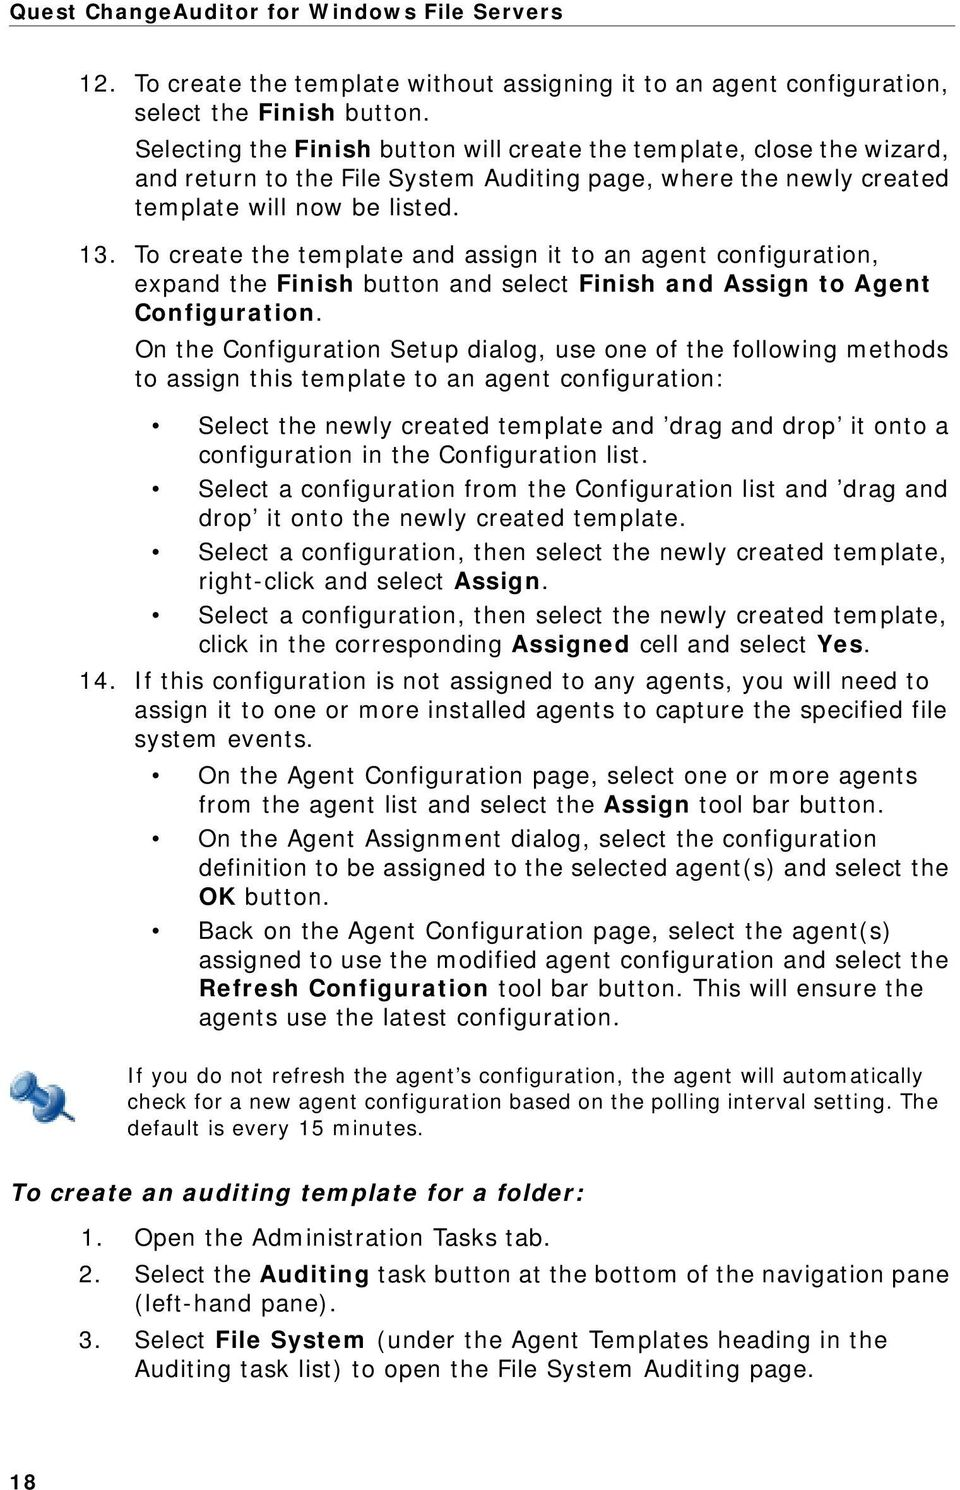 To create the template and assign it to an agent configuration, expand the Finish button and select Finish and Assign to Agent Configuration.